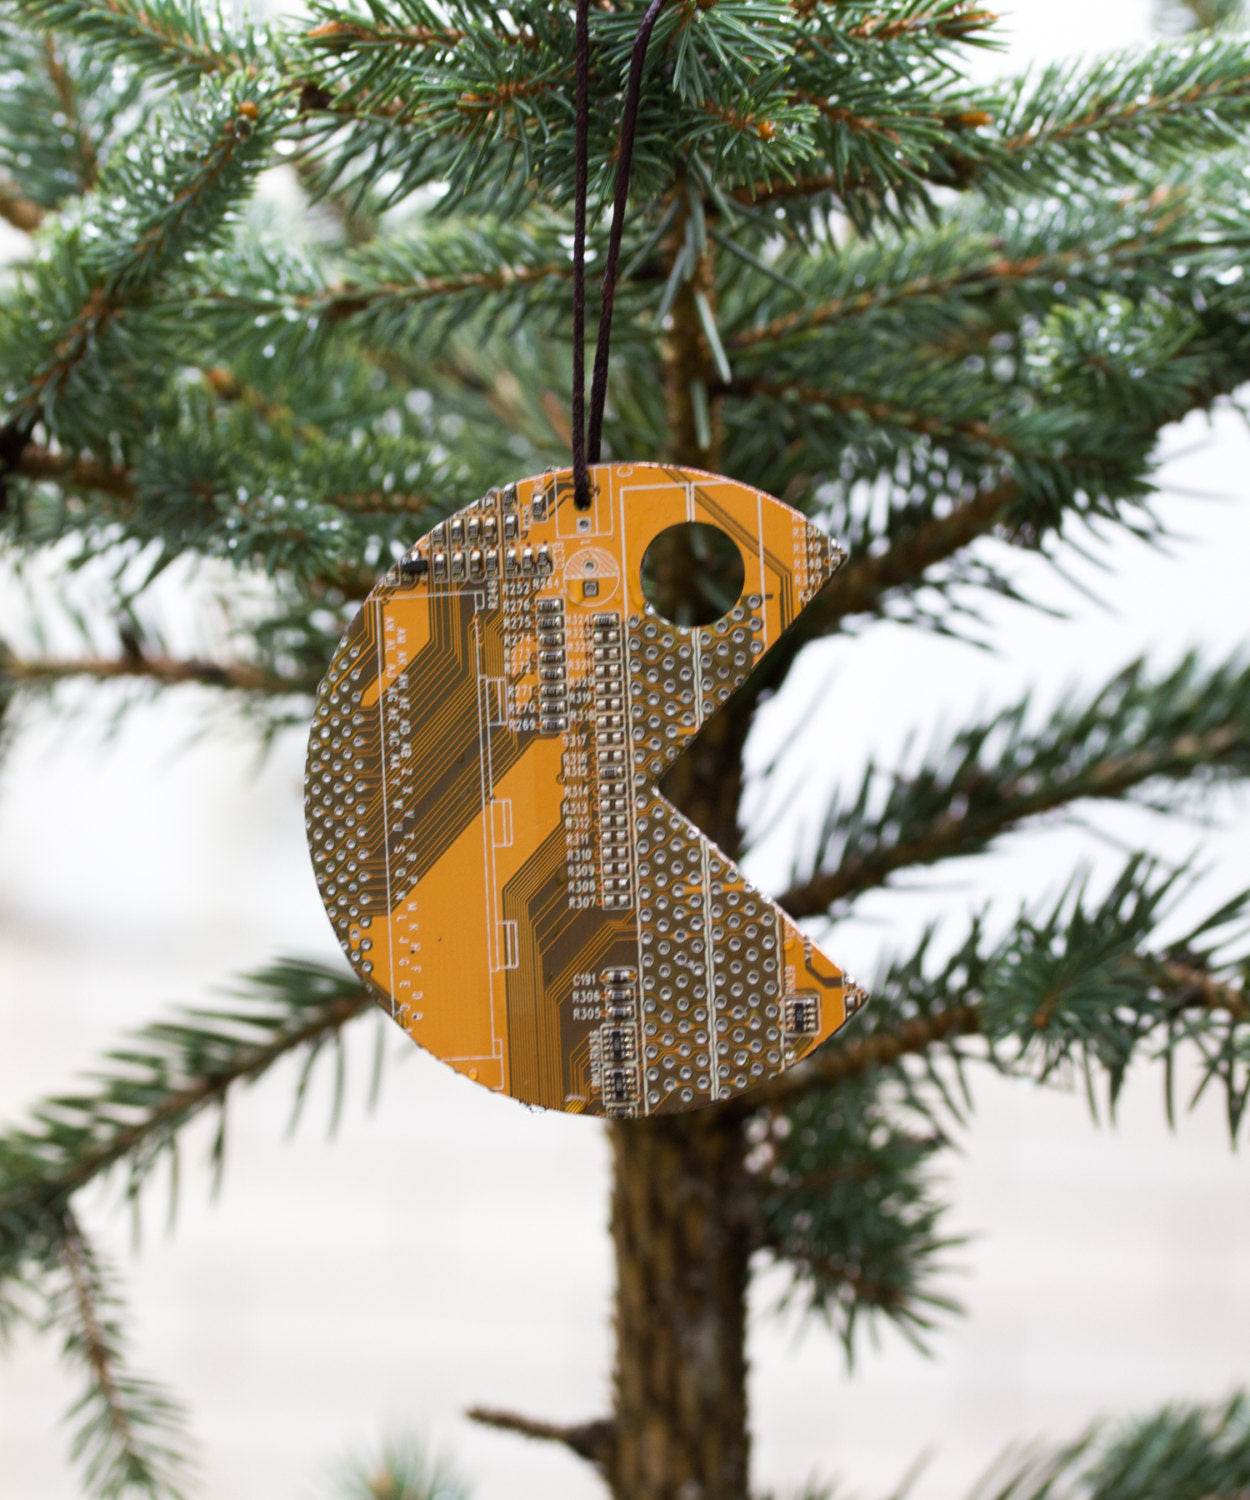 Christmas ornament inspired by videogame